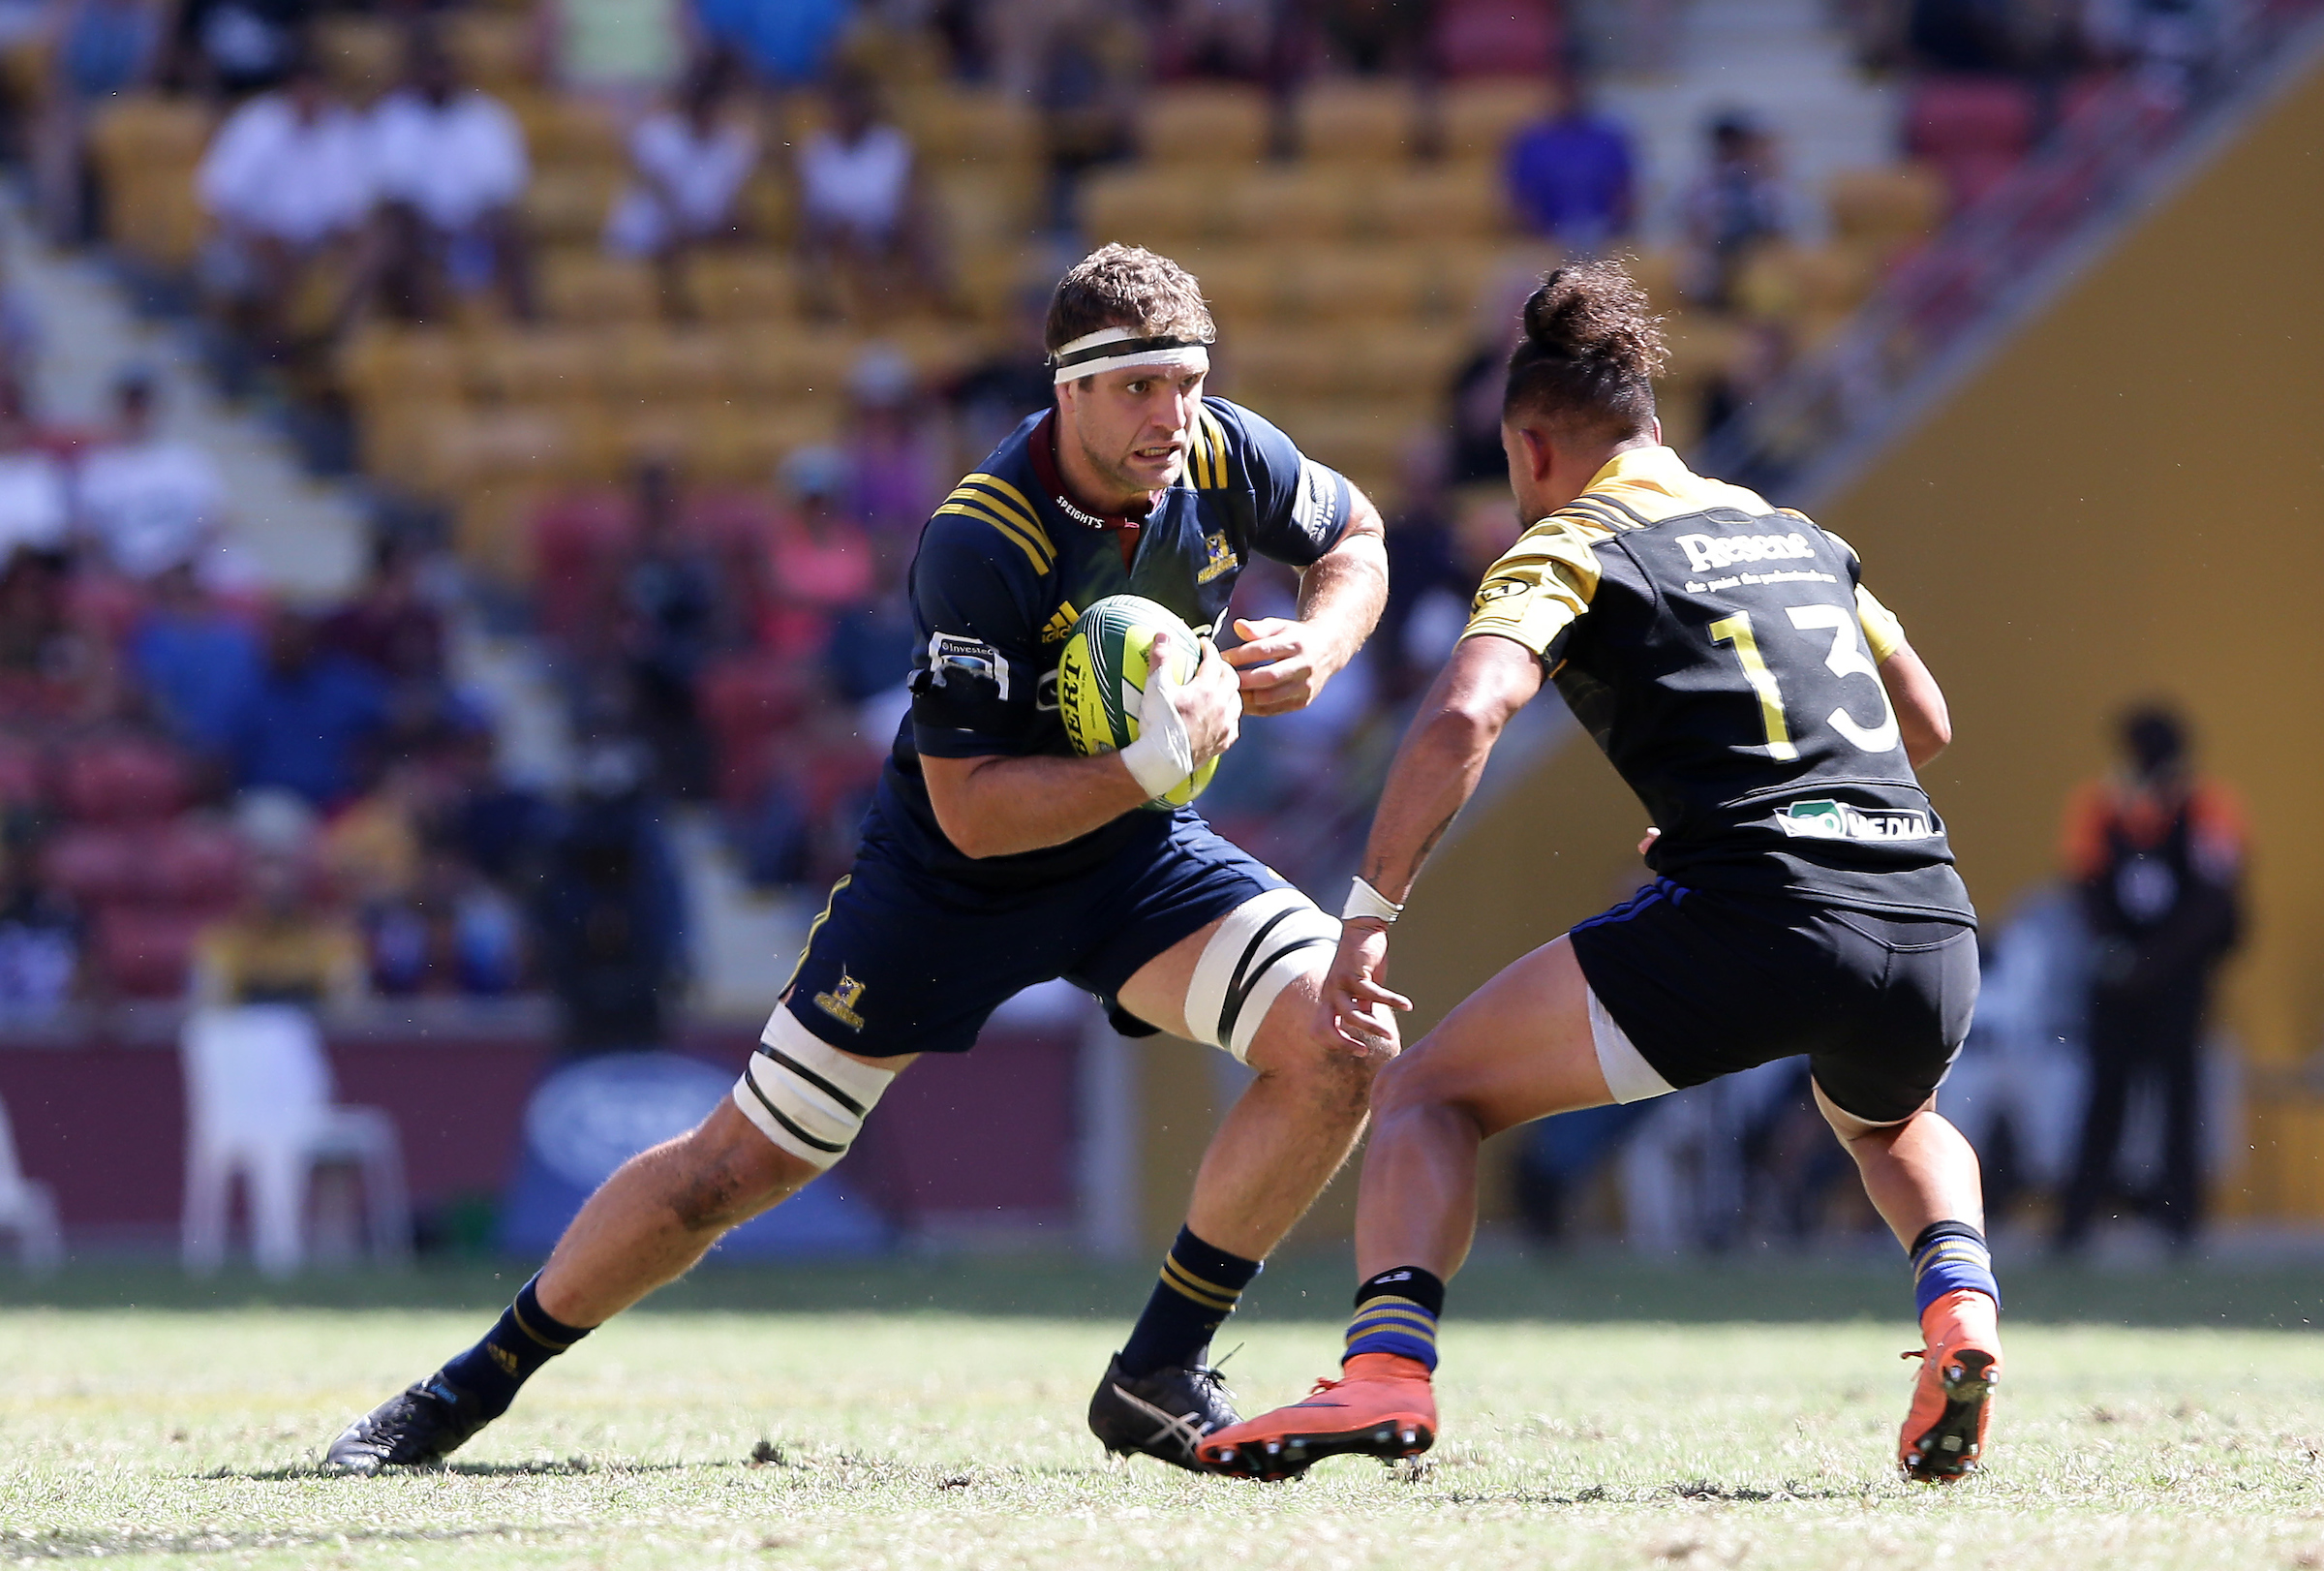 Rugby: Highlanders grit in beating Brumbies a highlight of